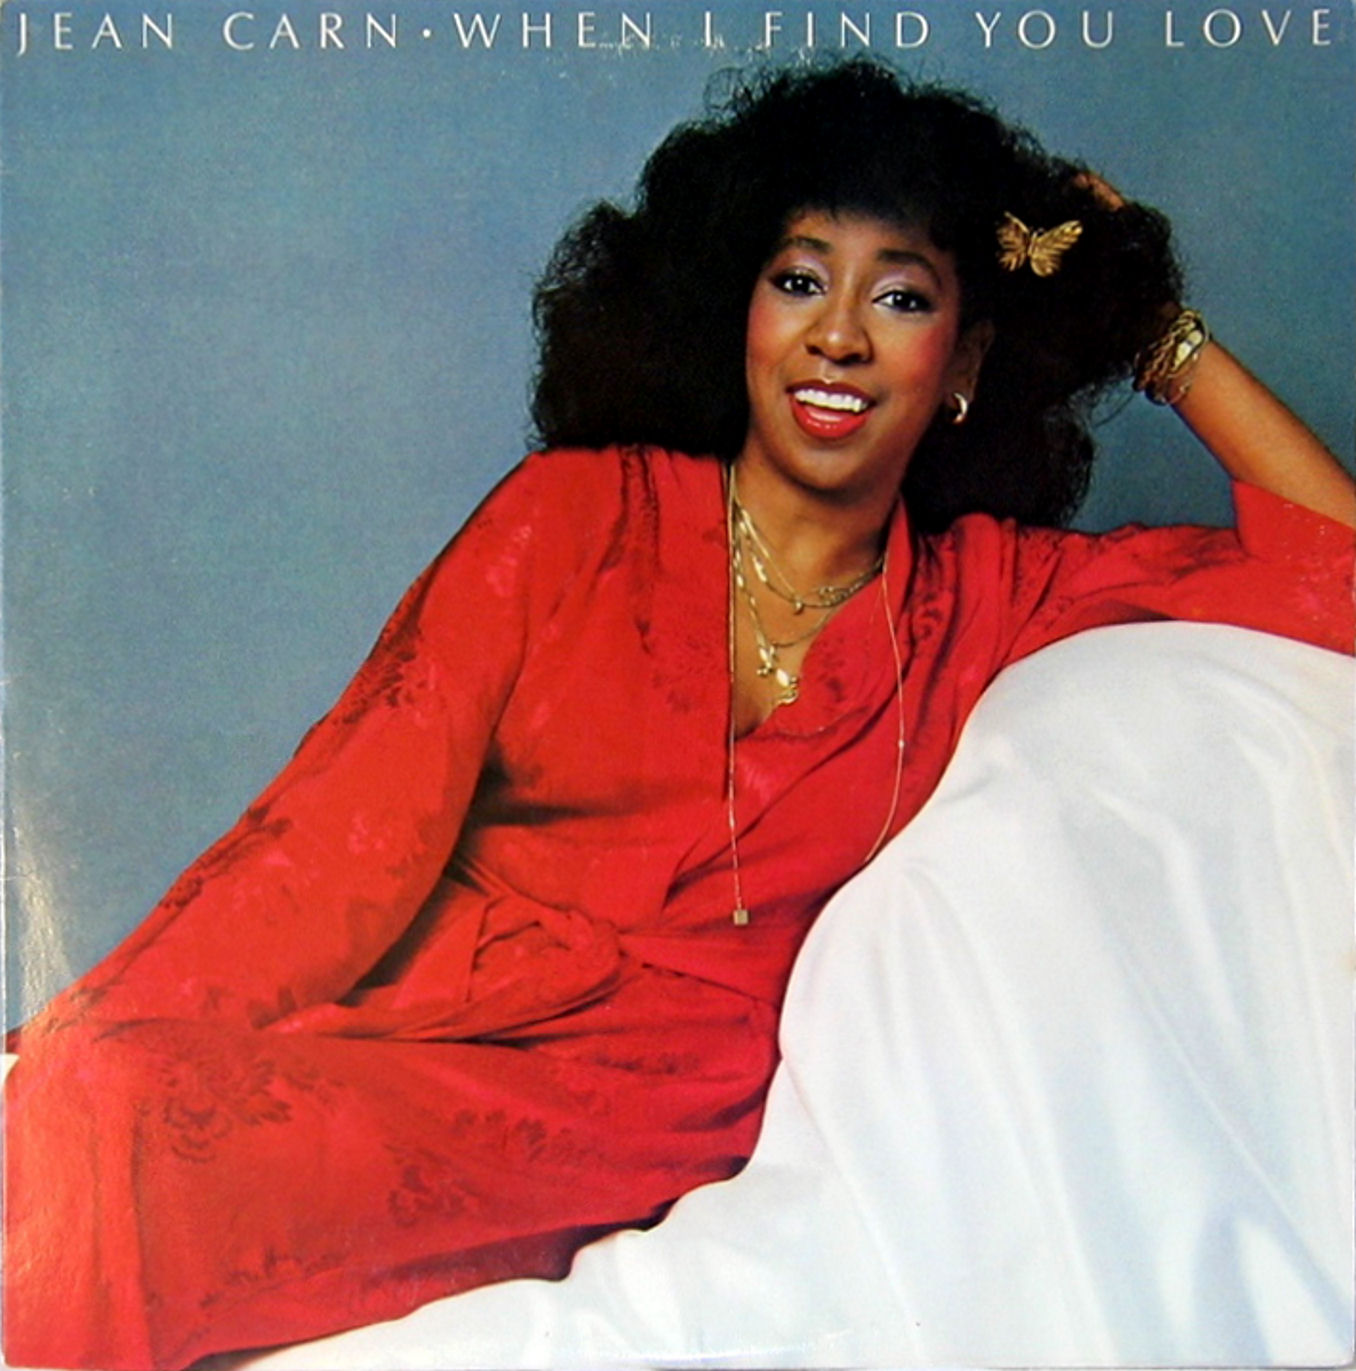 Jean Carn Jean Carne You're A Part Of Me